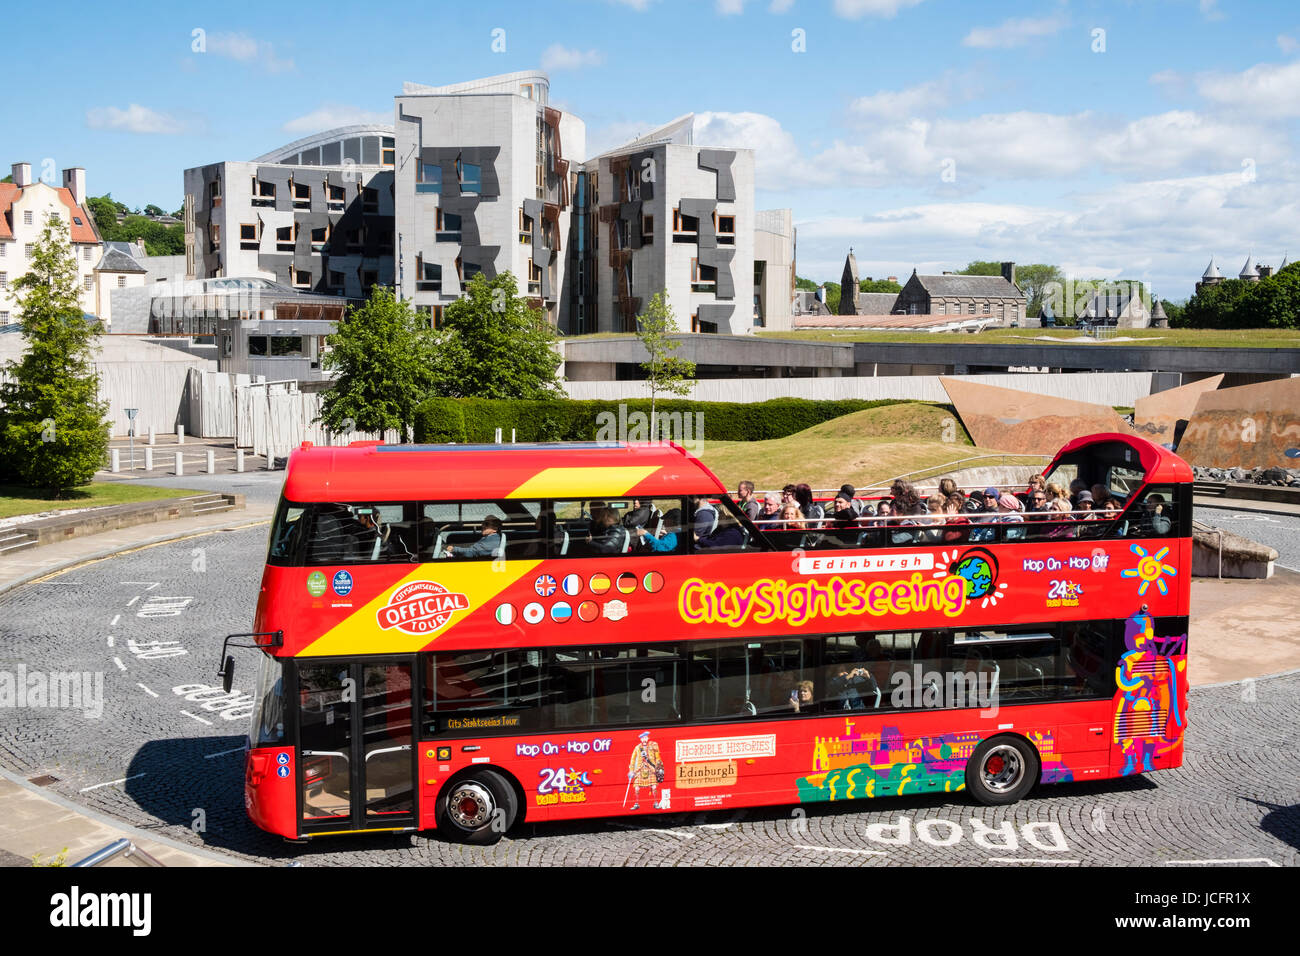 Tourist bus outside the Scottish Parliament building at Holyrood in Edinburgh, Scotland, United Kingdom. - Stock Image